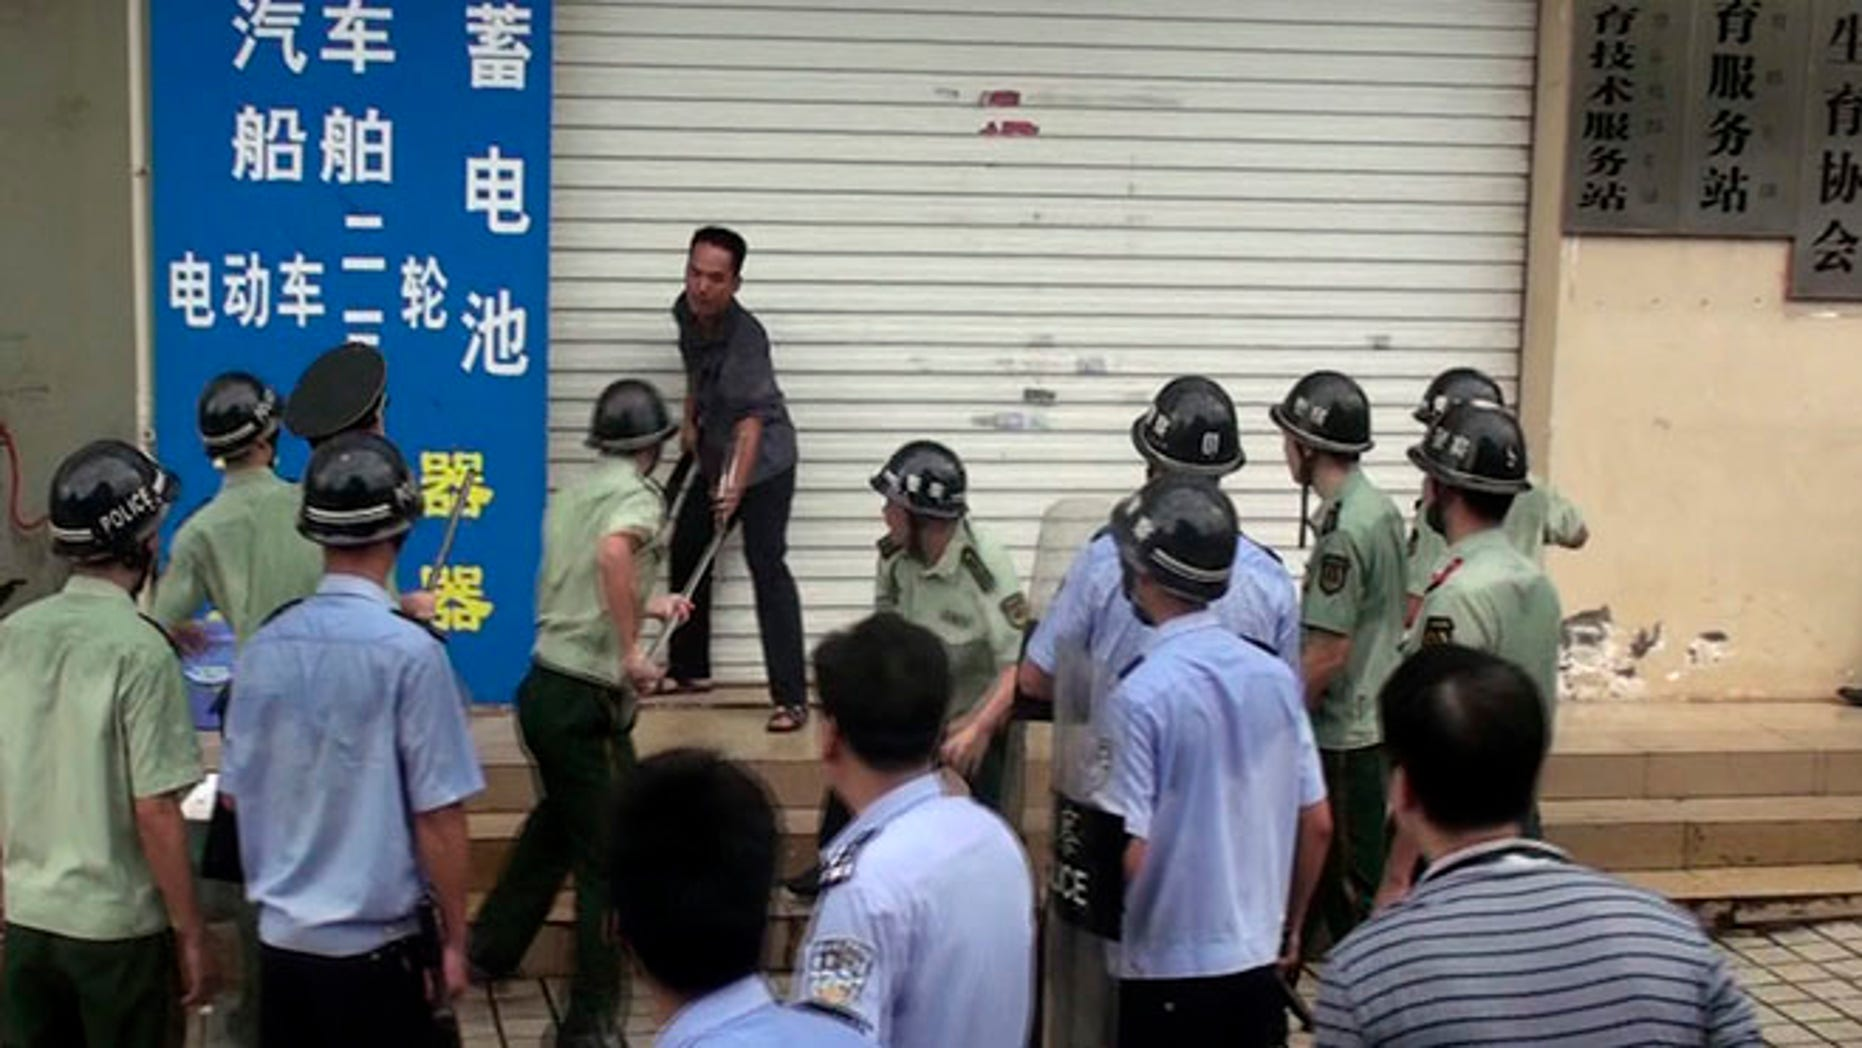 In this  July 23, 2013 photo, Chinese security personnel try to subdue a knife-wielding man outside the family planning office in Dongxing city in southwest China's Guangxi province. Local media report that the man attacked the local family planning office killing two officials and injuring another four after being refused a residency permit for his fourth child that he fathered in violation of China's one-child policy. (AP Photo) CHINA OUT